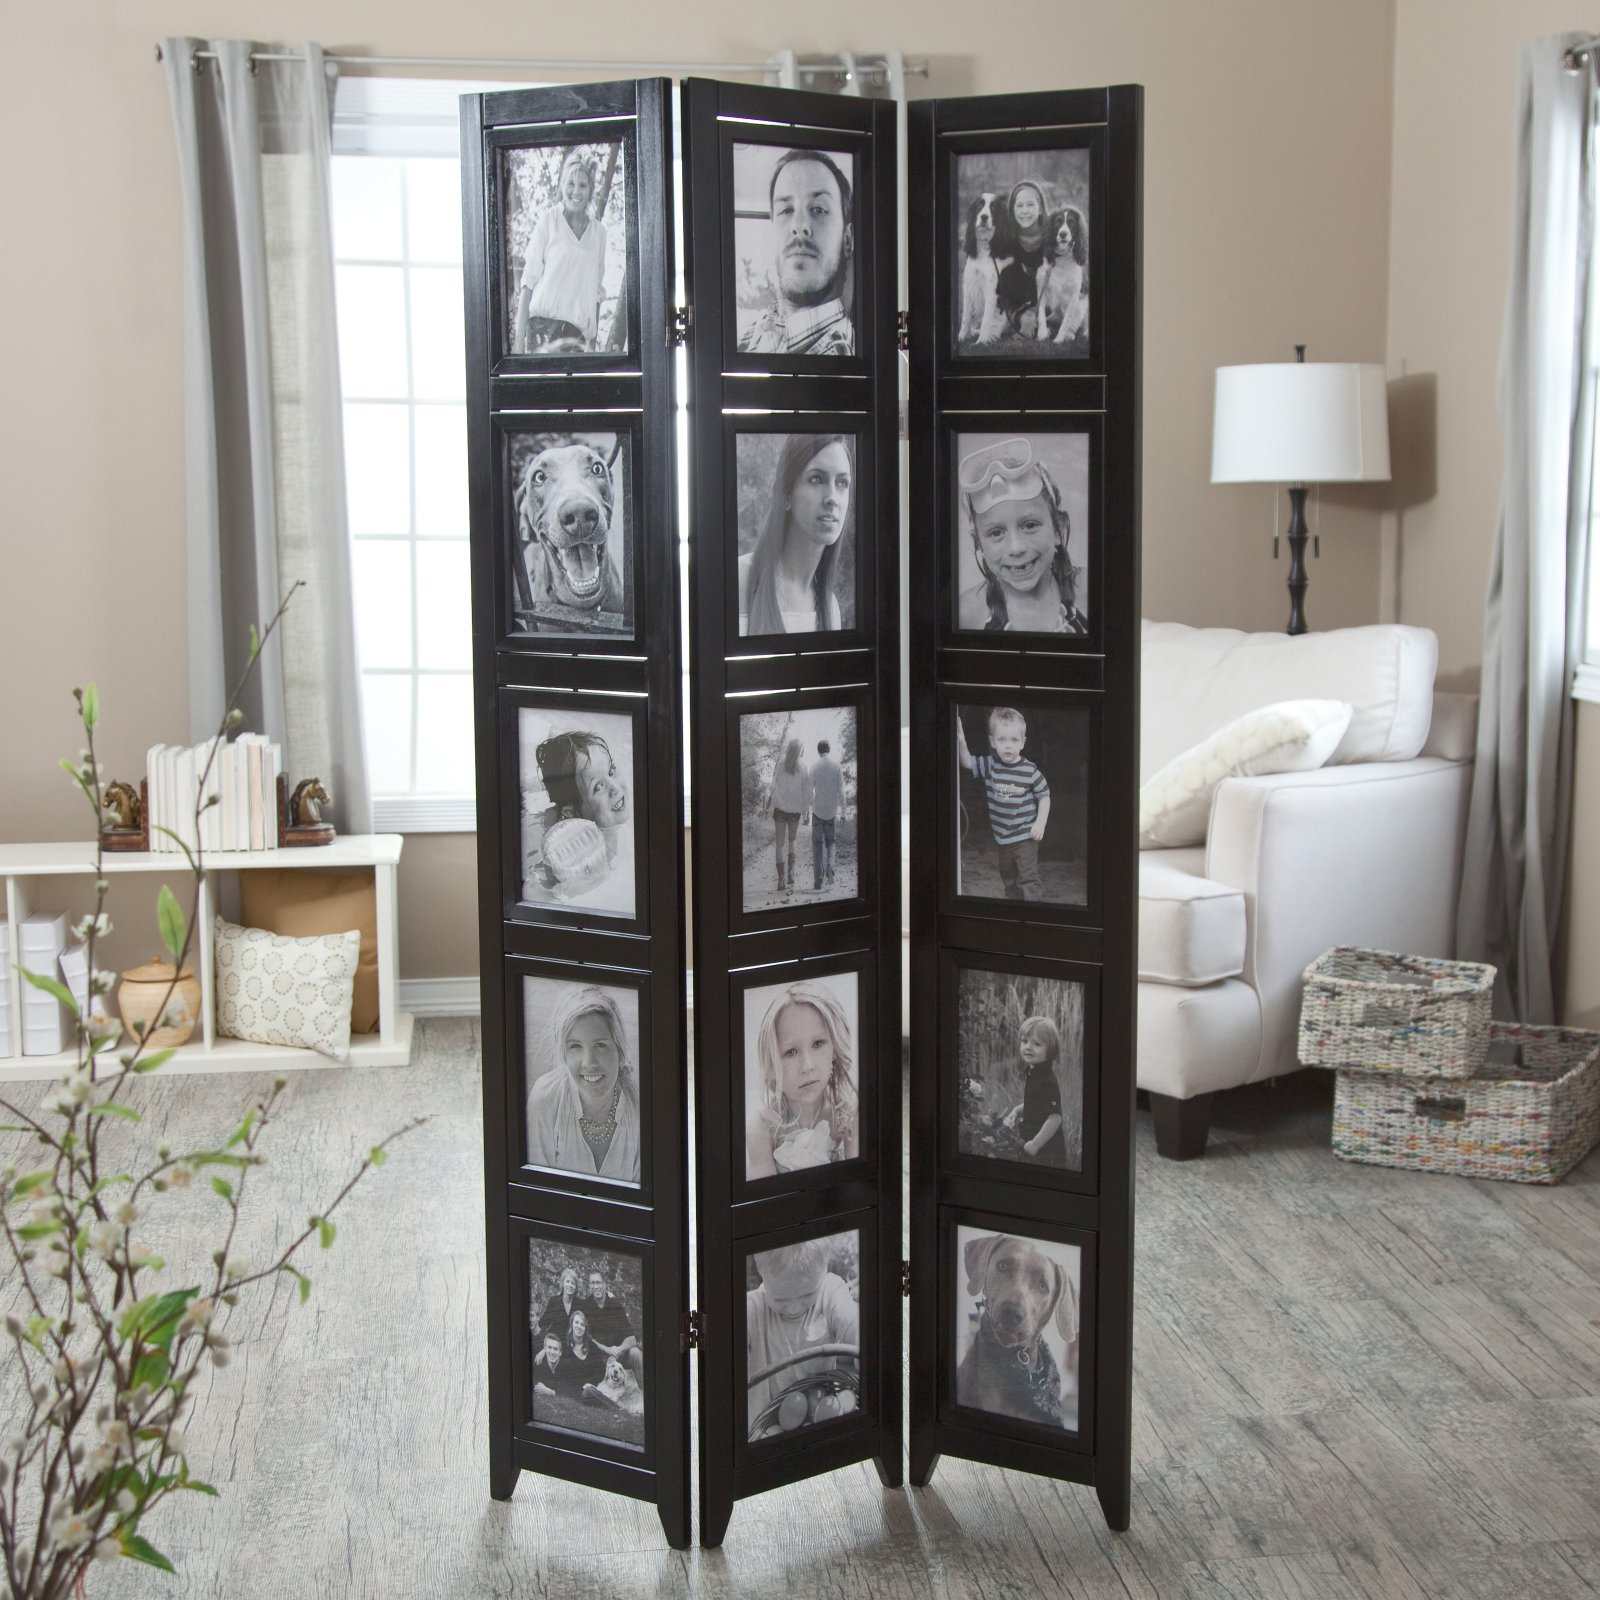 Memories Double Sided Photo Frame Room Divider - Black 3 Panel - 8 x 10